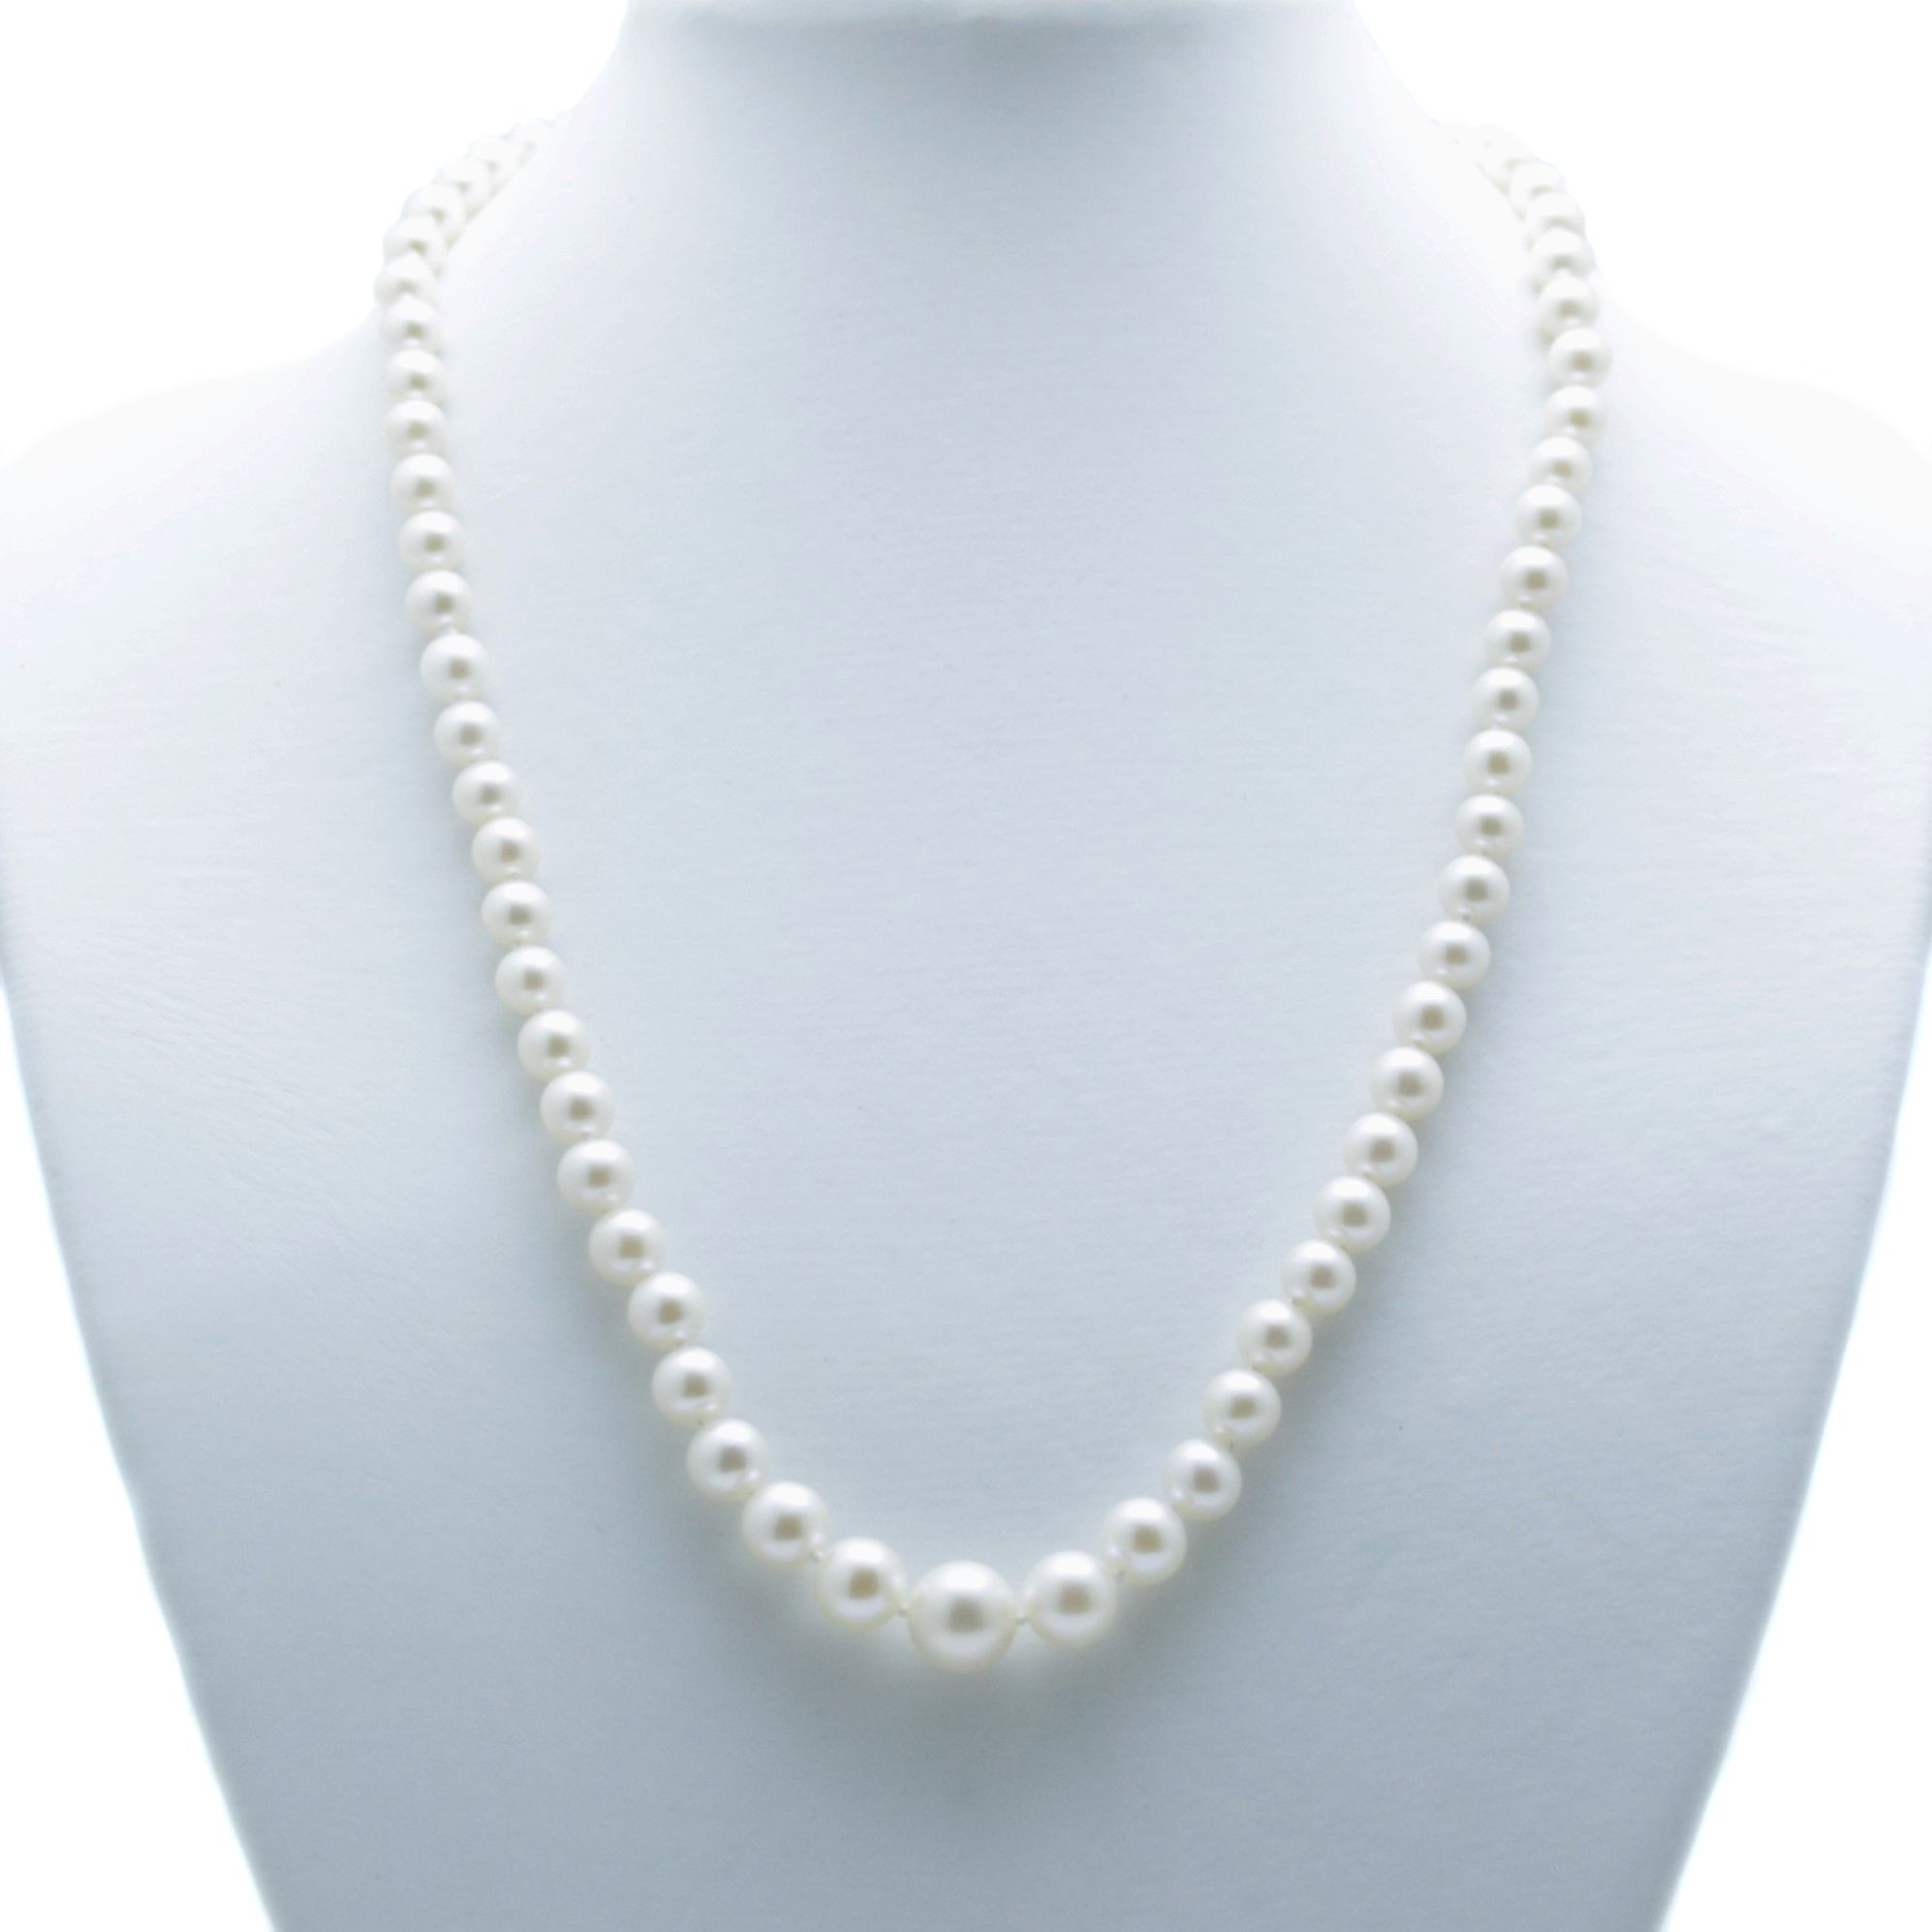 String Pearl Necklace: AA 4-9mm Round Graduated String